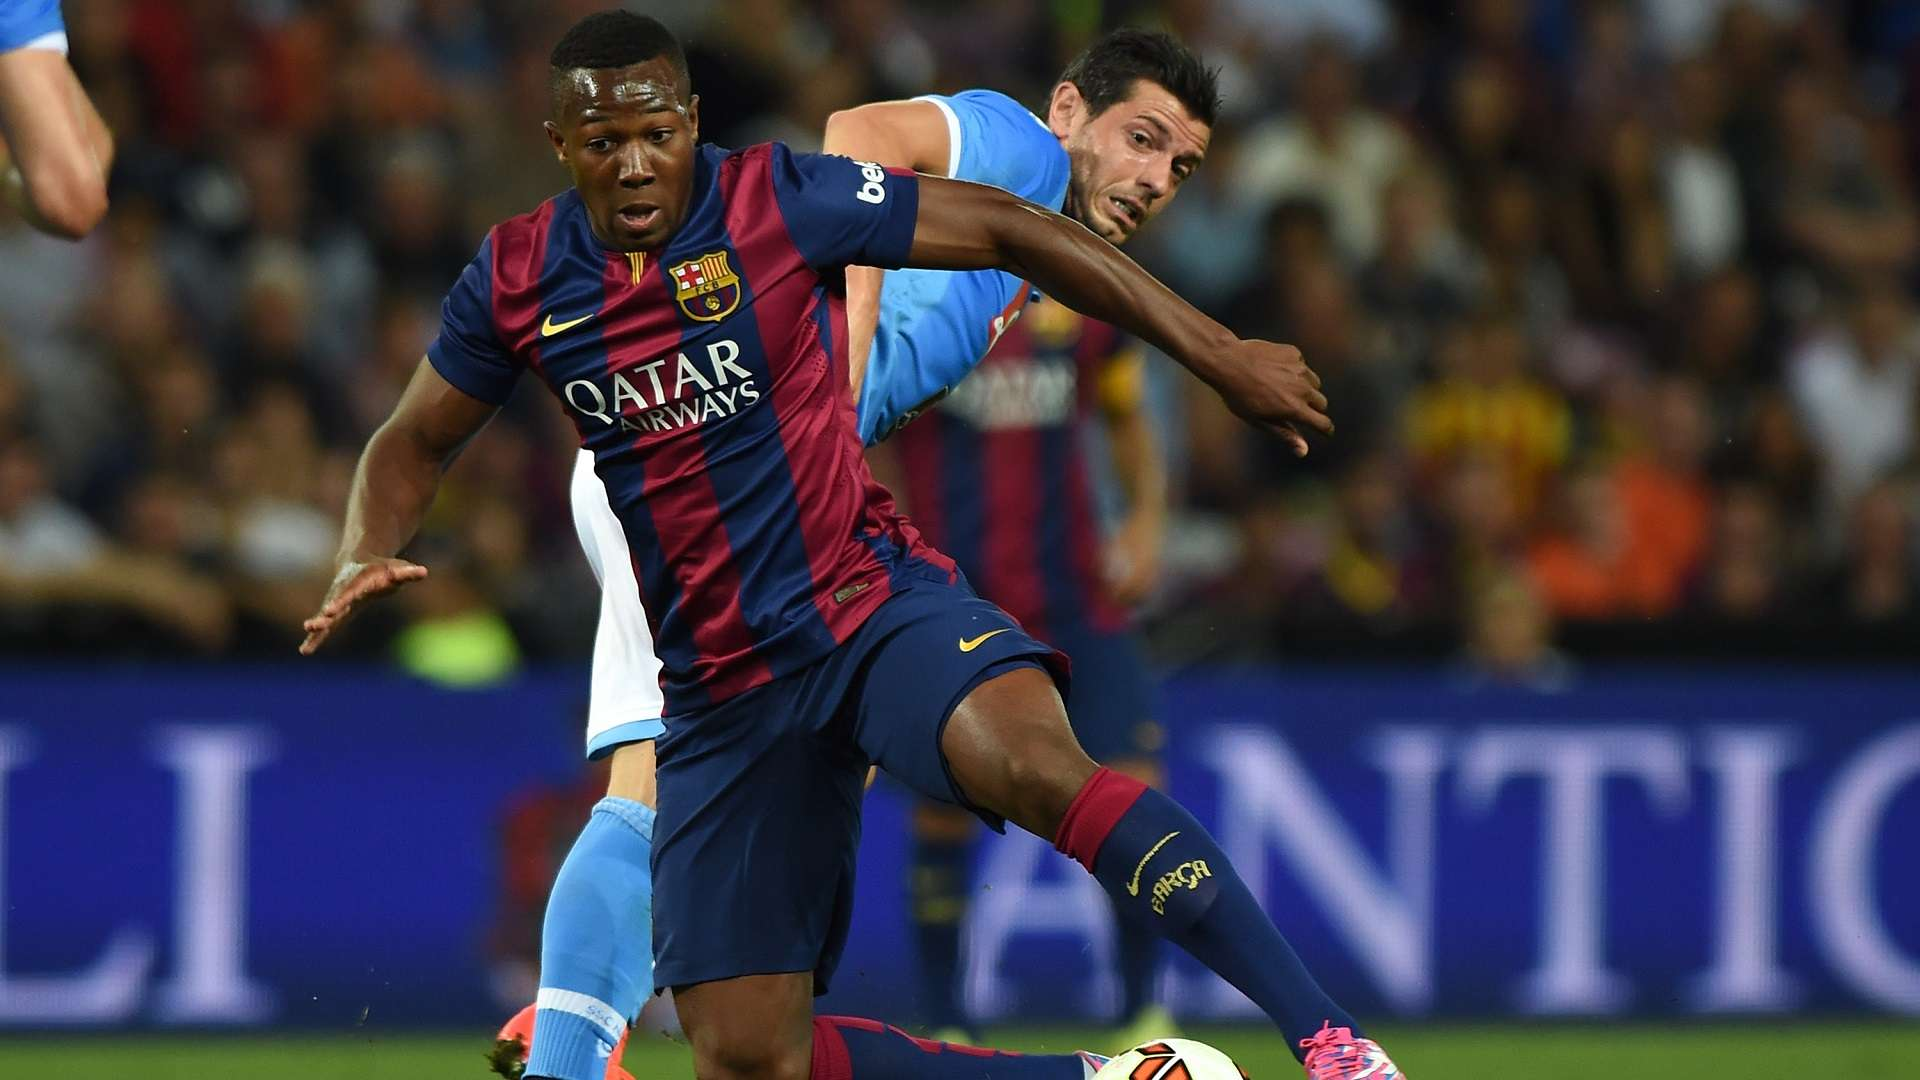 Adama Traore Ready For Top Premier League Club After Long Journey From Barcelona Goal Com